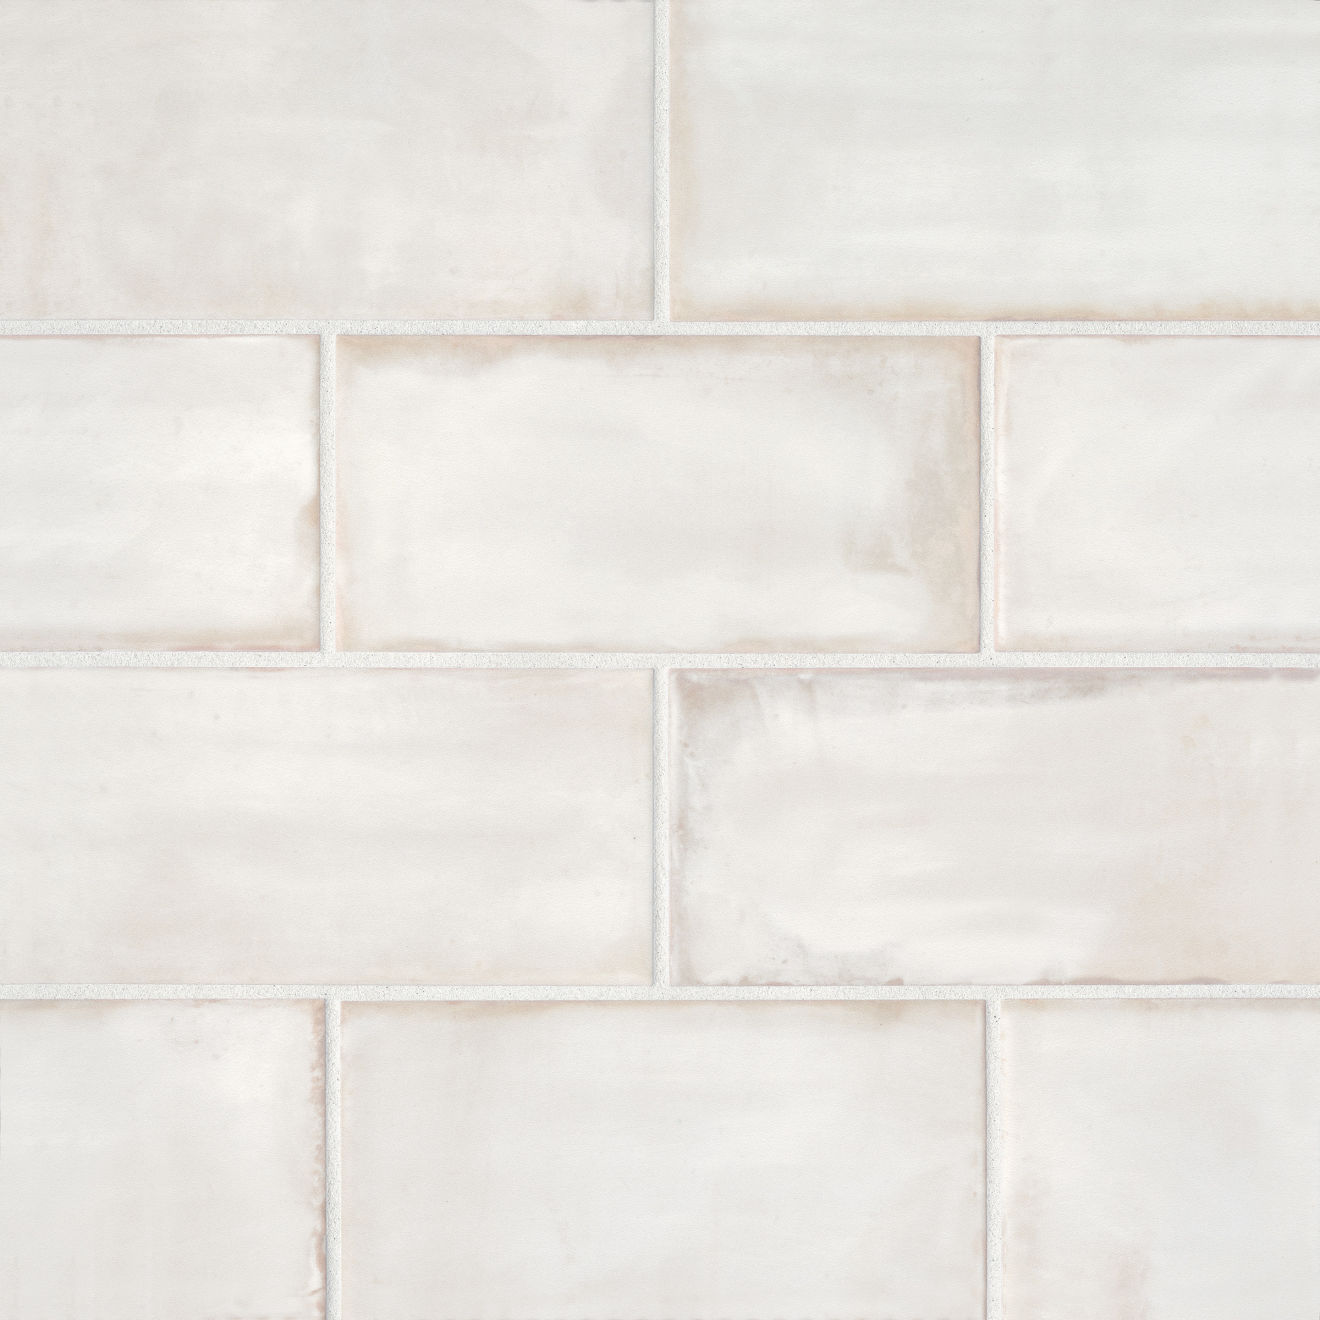 Chateau 4 Quot X 8 Quot Wall Tile In Canvas Bedrosians Tile Amp Stone